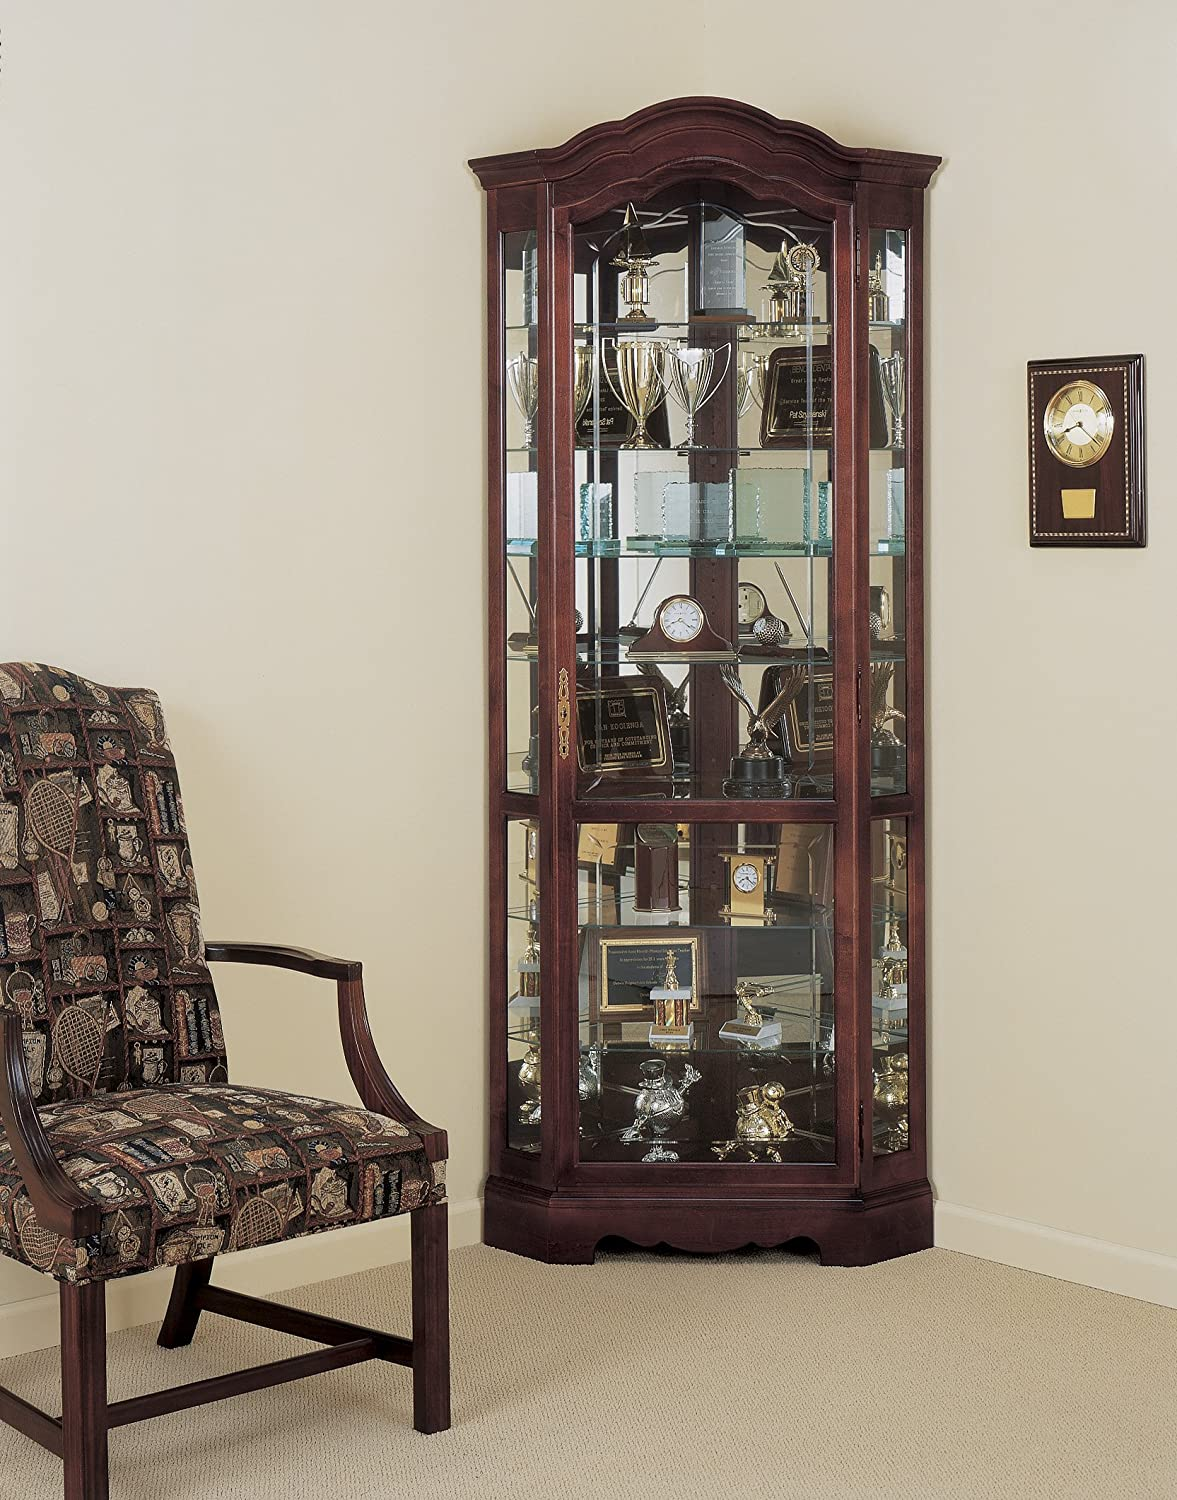 Perfect Amazon.com: Howard Miller 680 249 Jamestown Curio Cabinet: Kitchen U0026 Dining